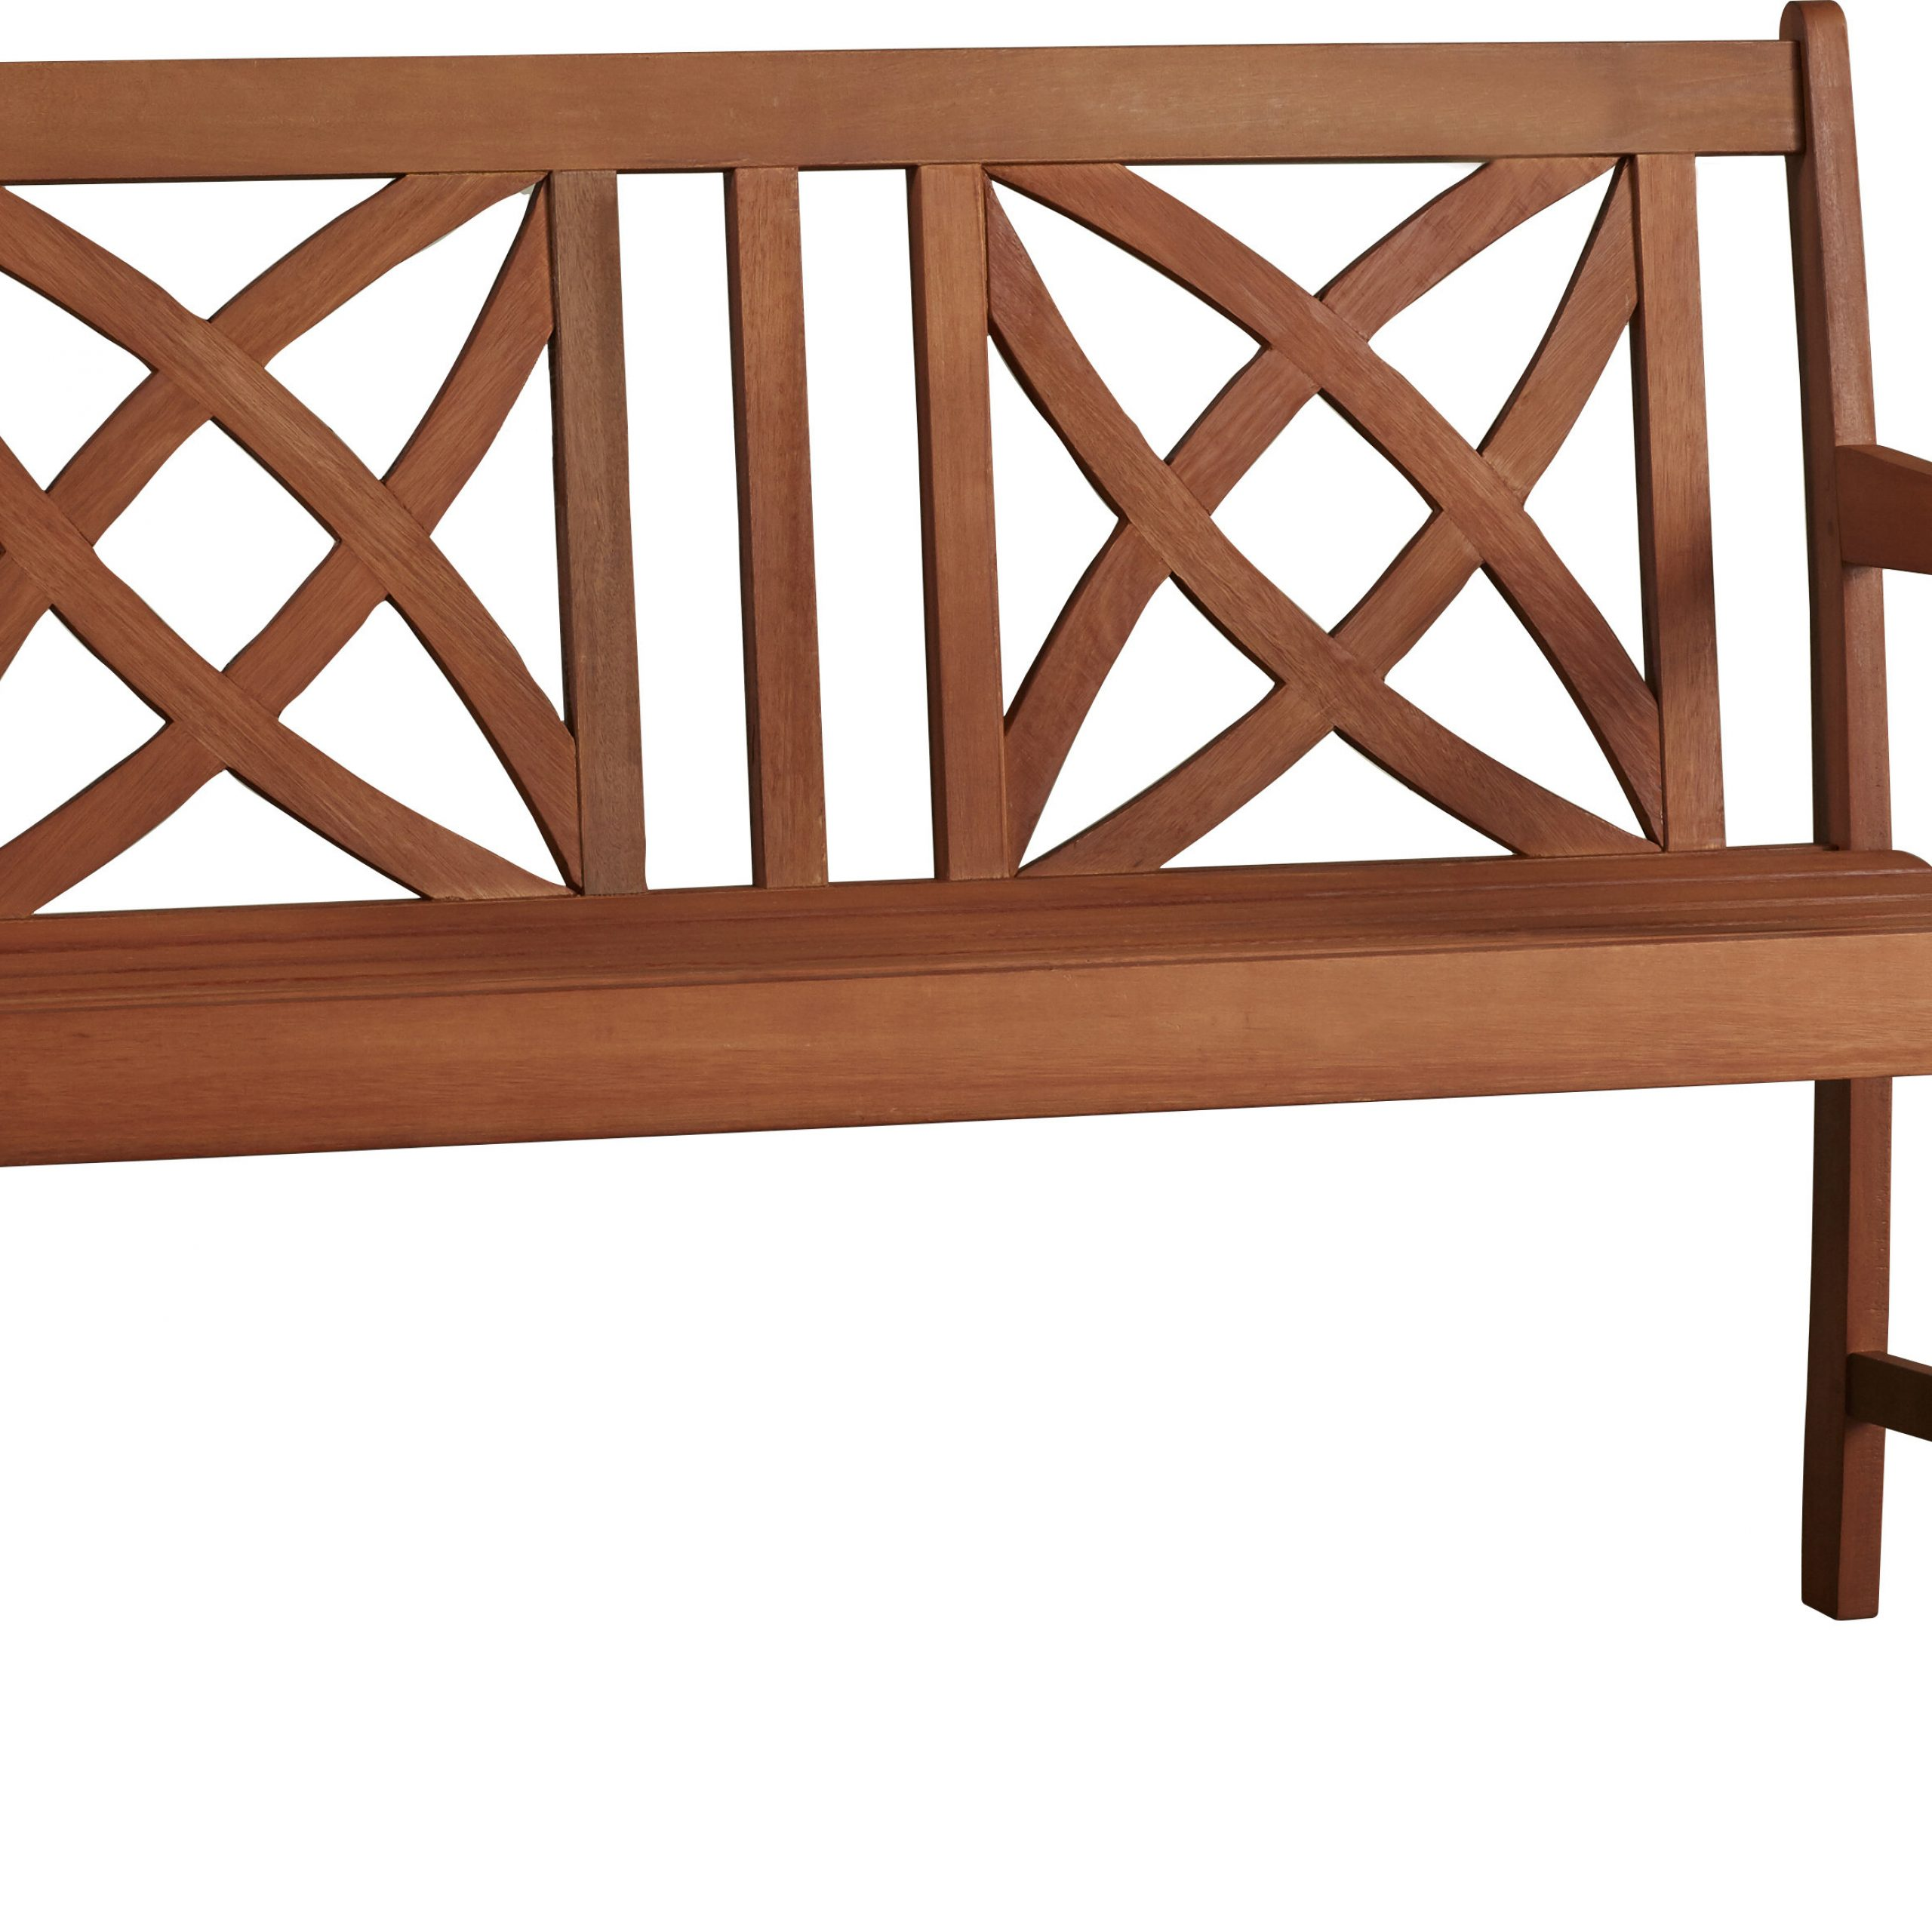 Avoca Wood Garden Benches Intended For Popular Maliyah Solid Wood Garden Bench (View 3 of 30)